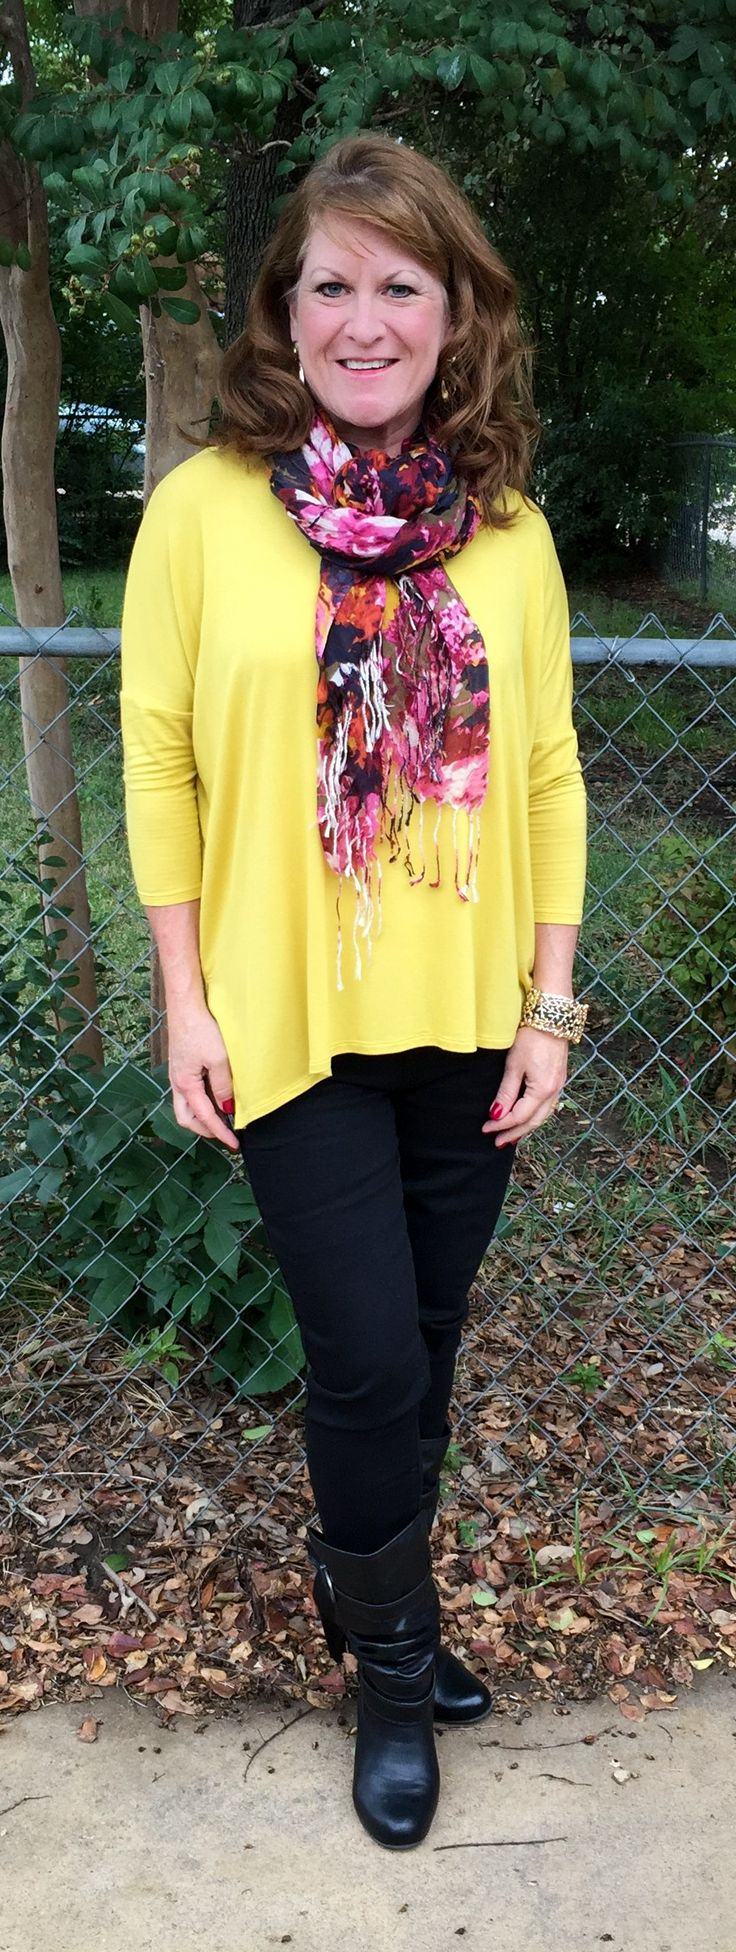 I bought this top at Charming Charlie about a month ago and have been looking for different ways to wear it. It's amazing how adding a scarf can transform an outfit. And now that the weather has fi...